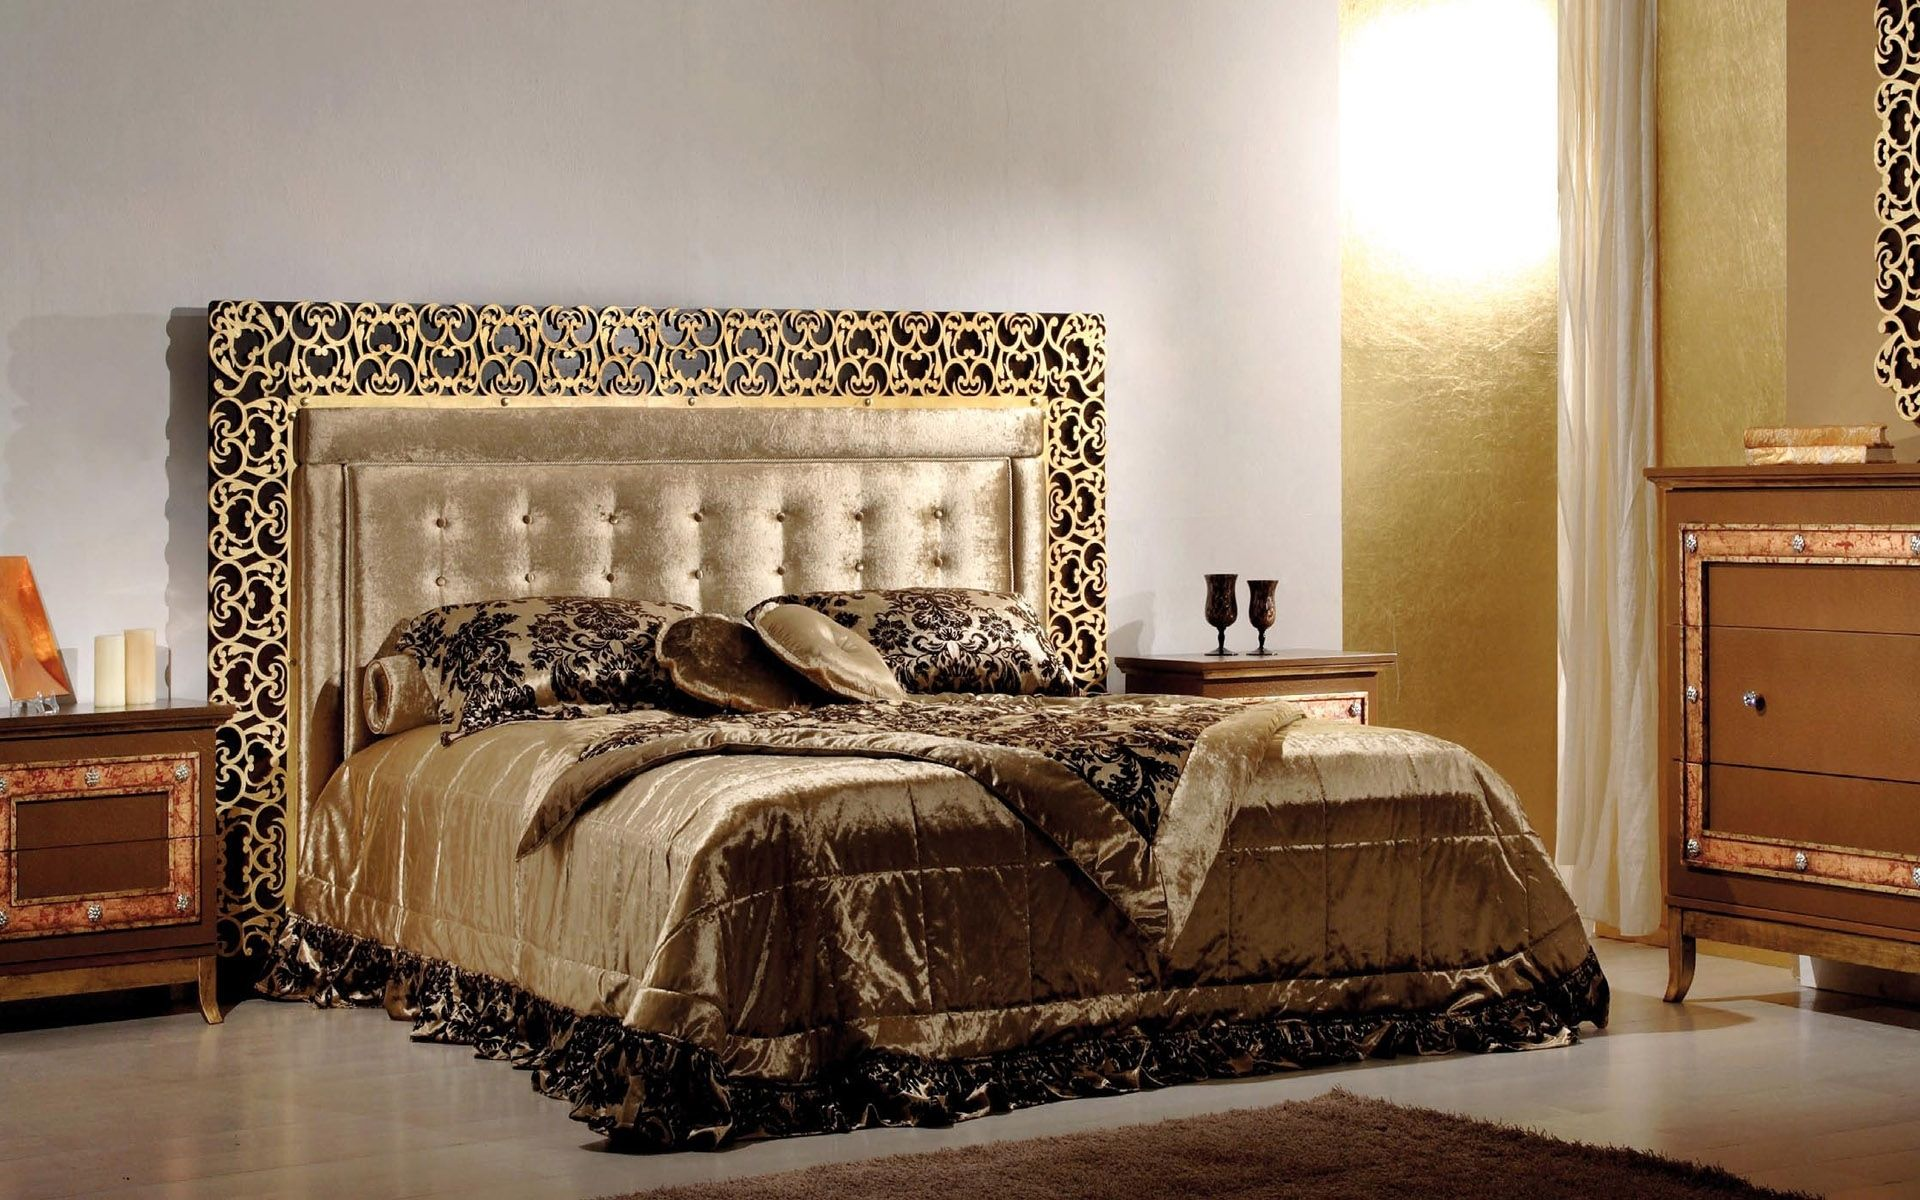 Luxury inspiration bed collection design modern gold black for Luxury bedroom inspiration